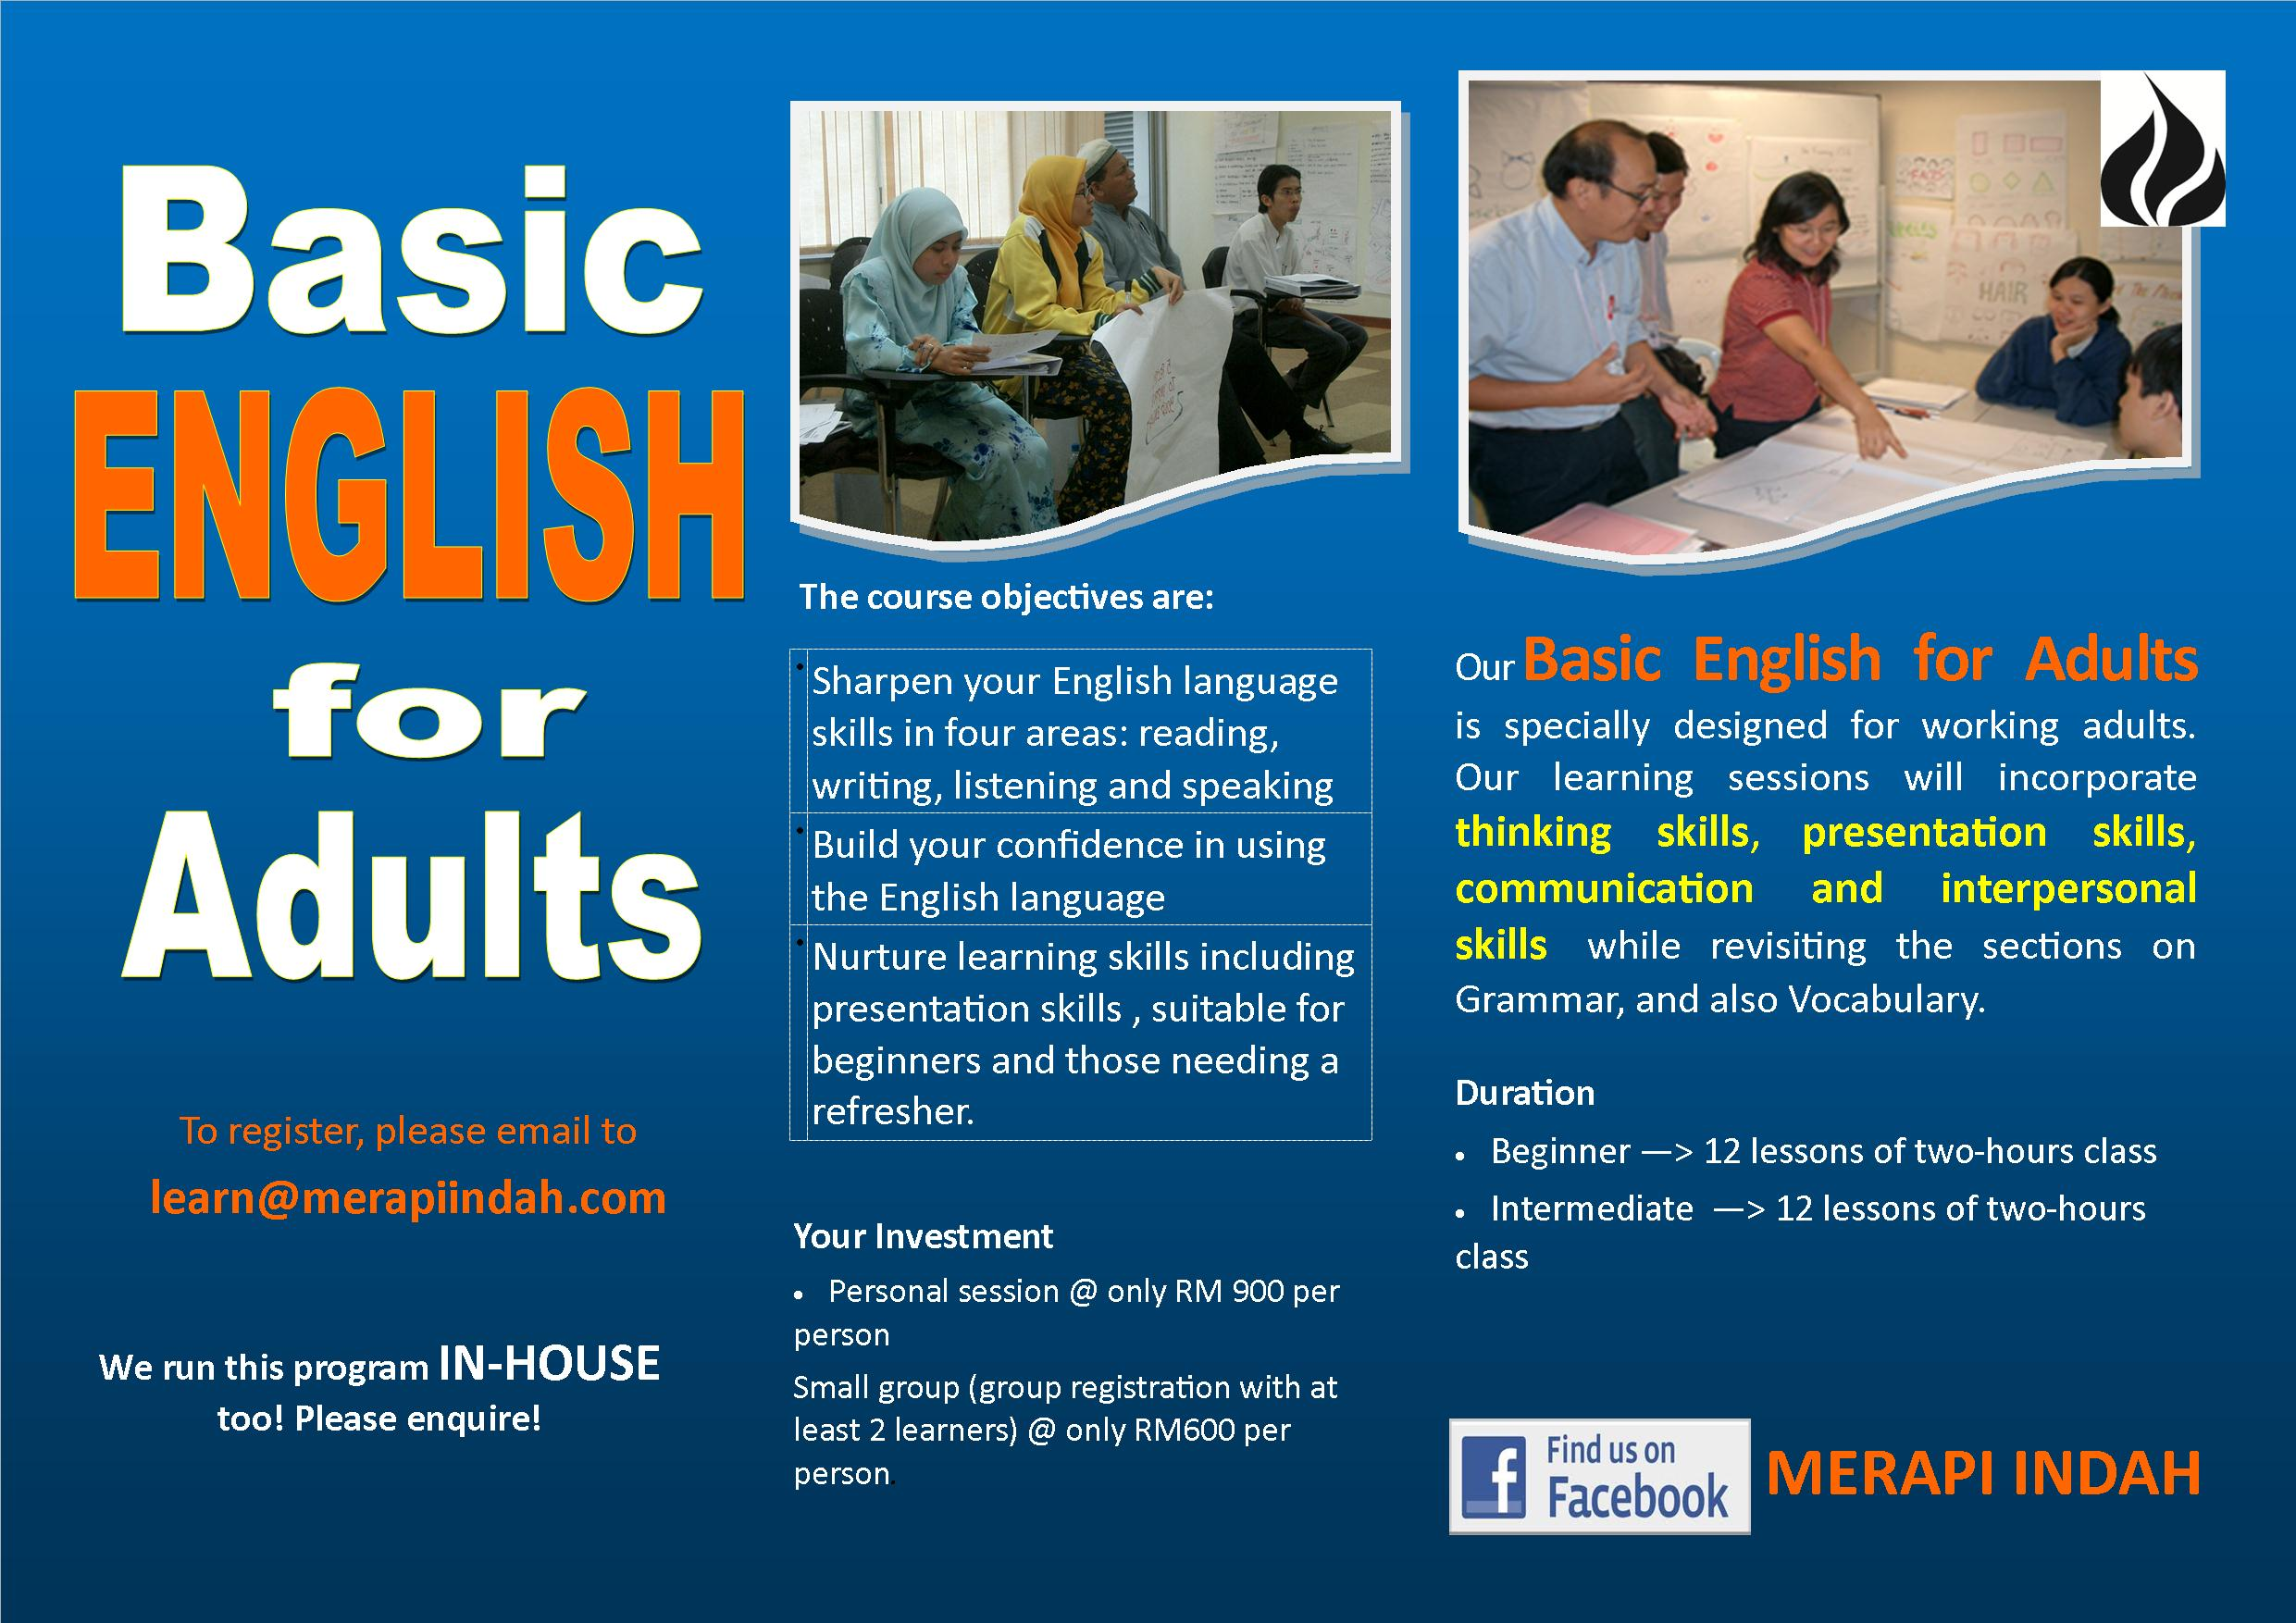 Basic English For Adults